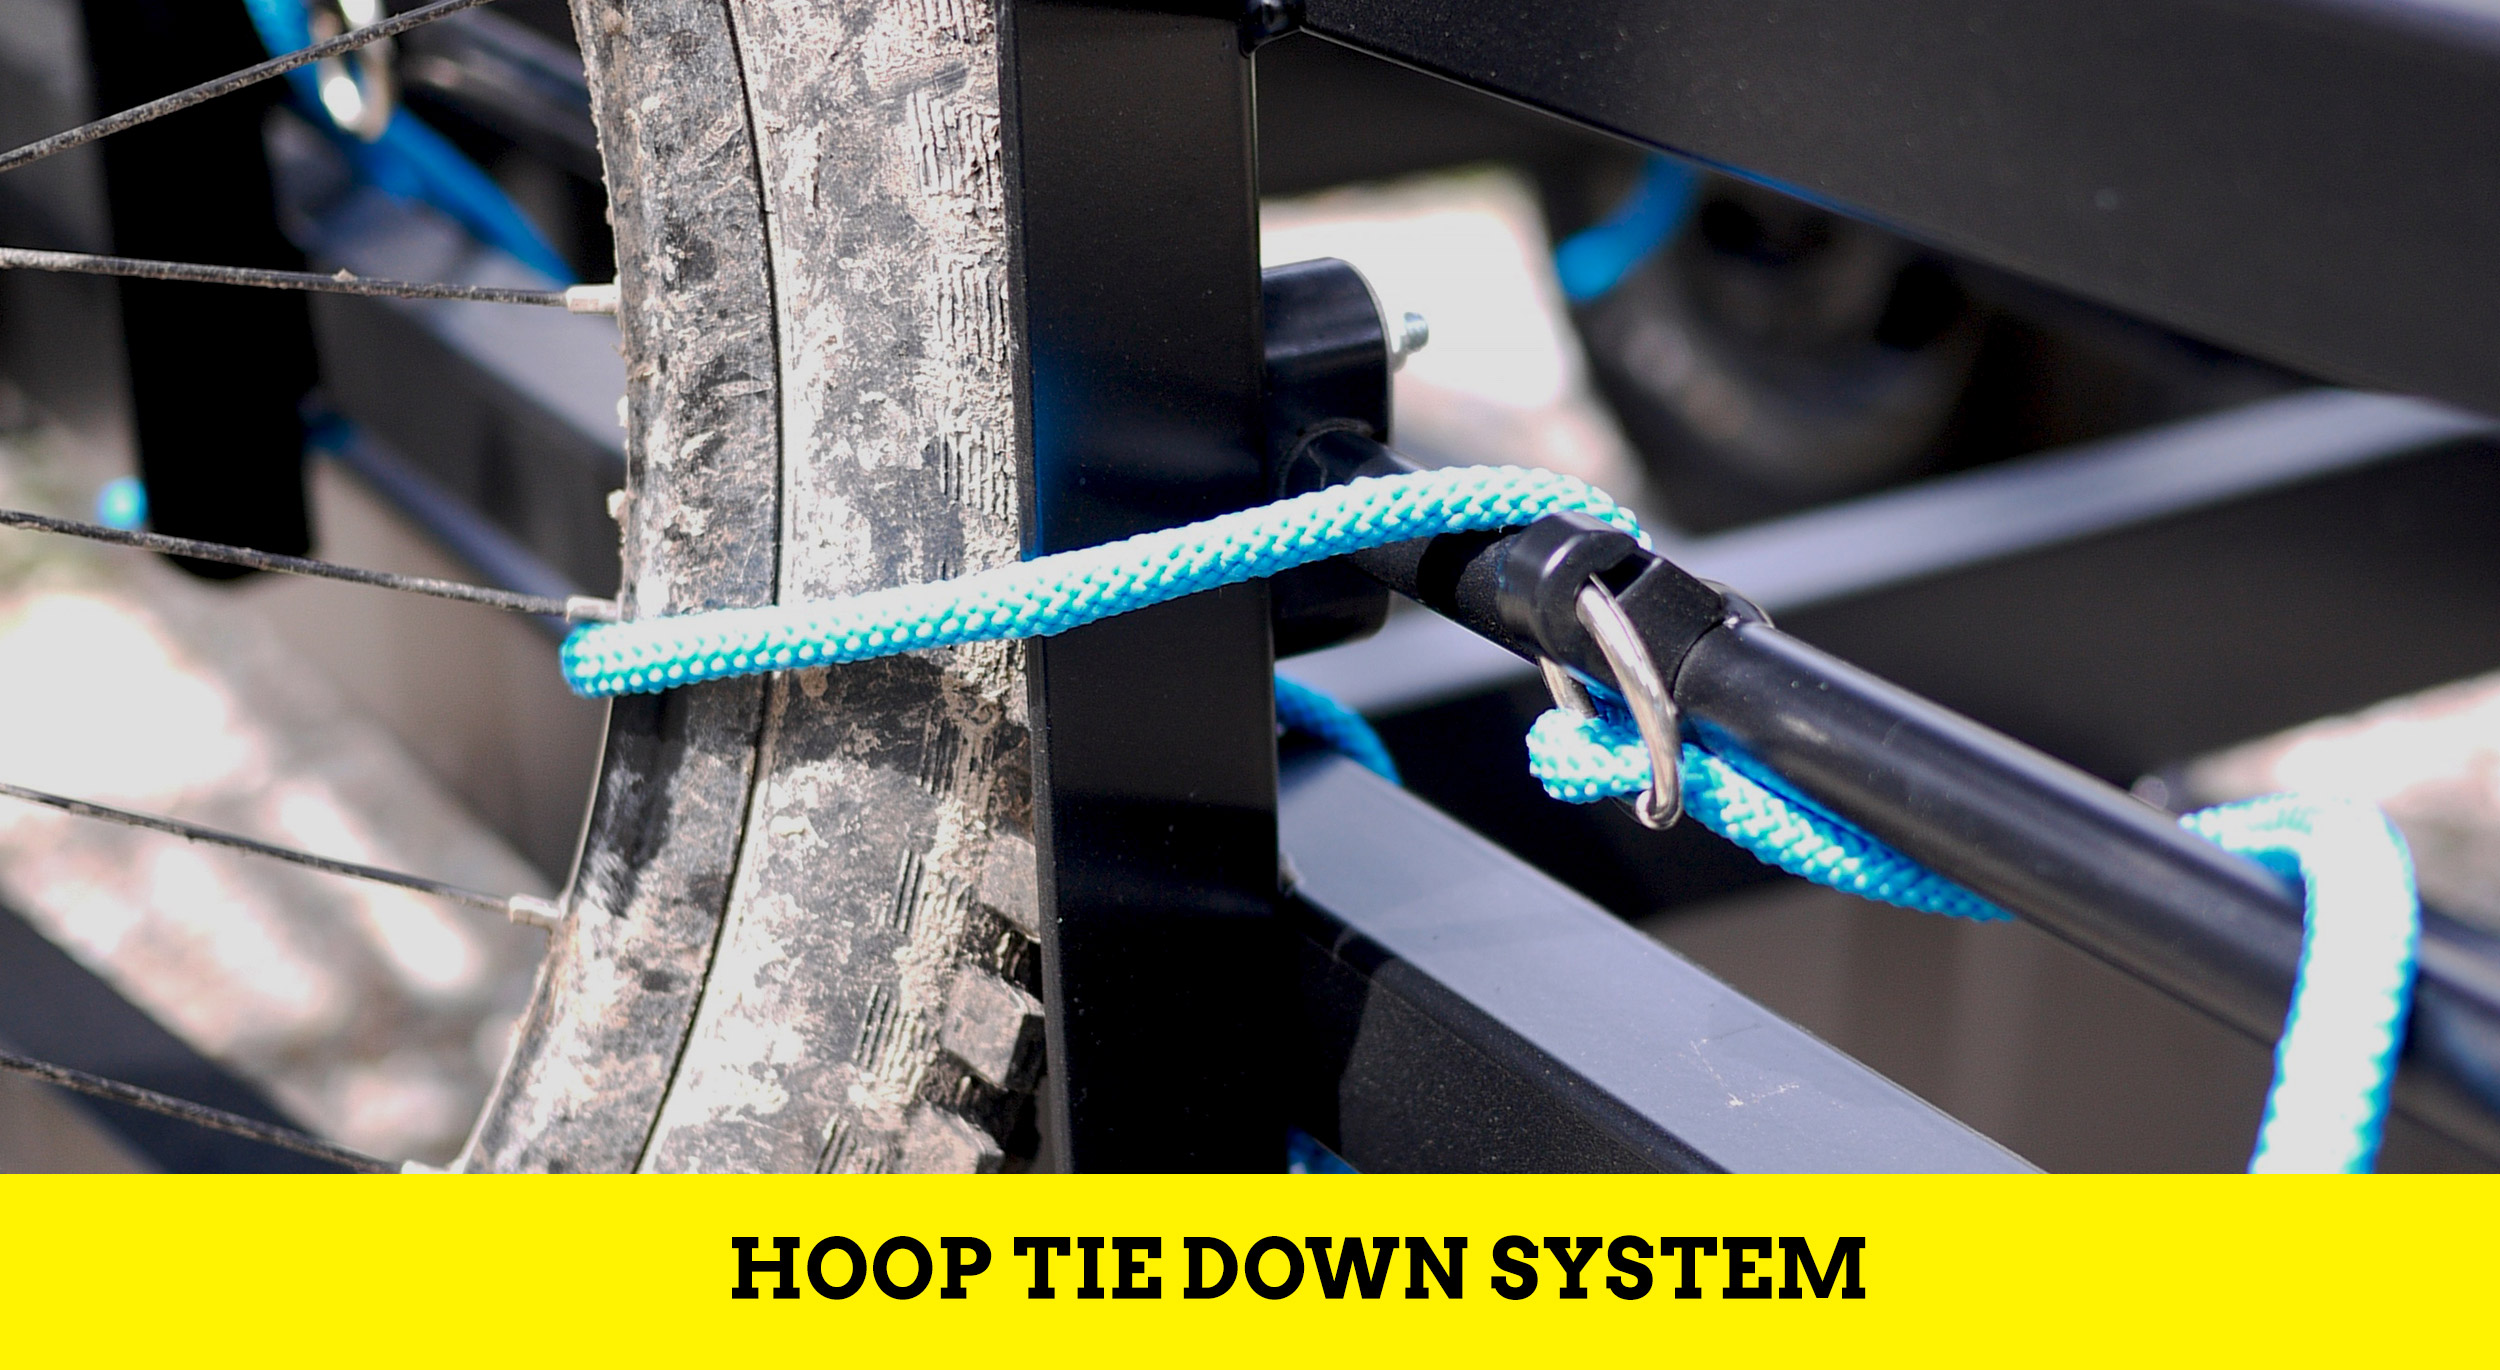 Huckwagons Mountain Bike Shuttle Trailer simple and quick hoop tie down system